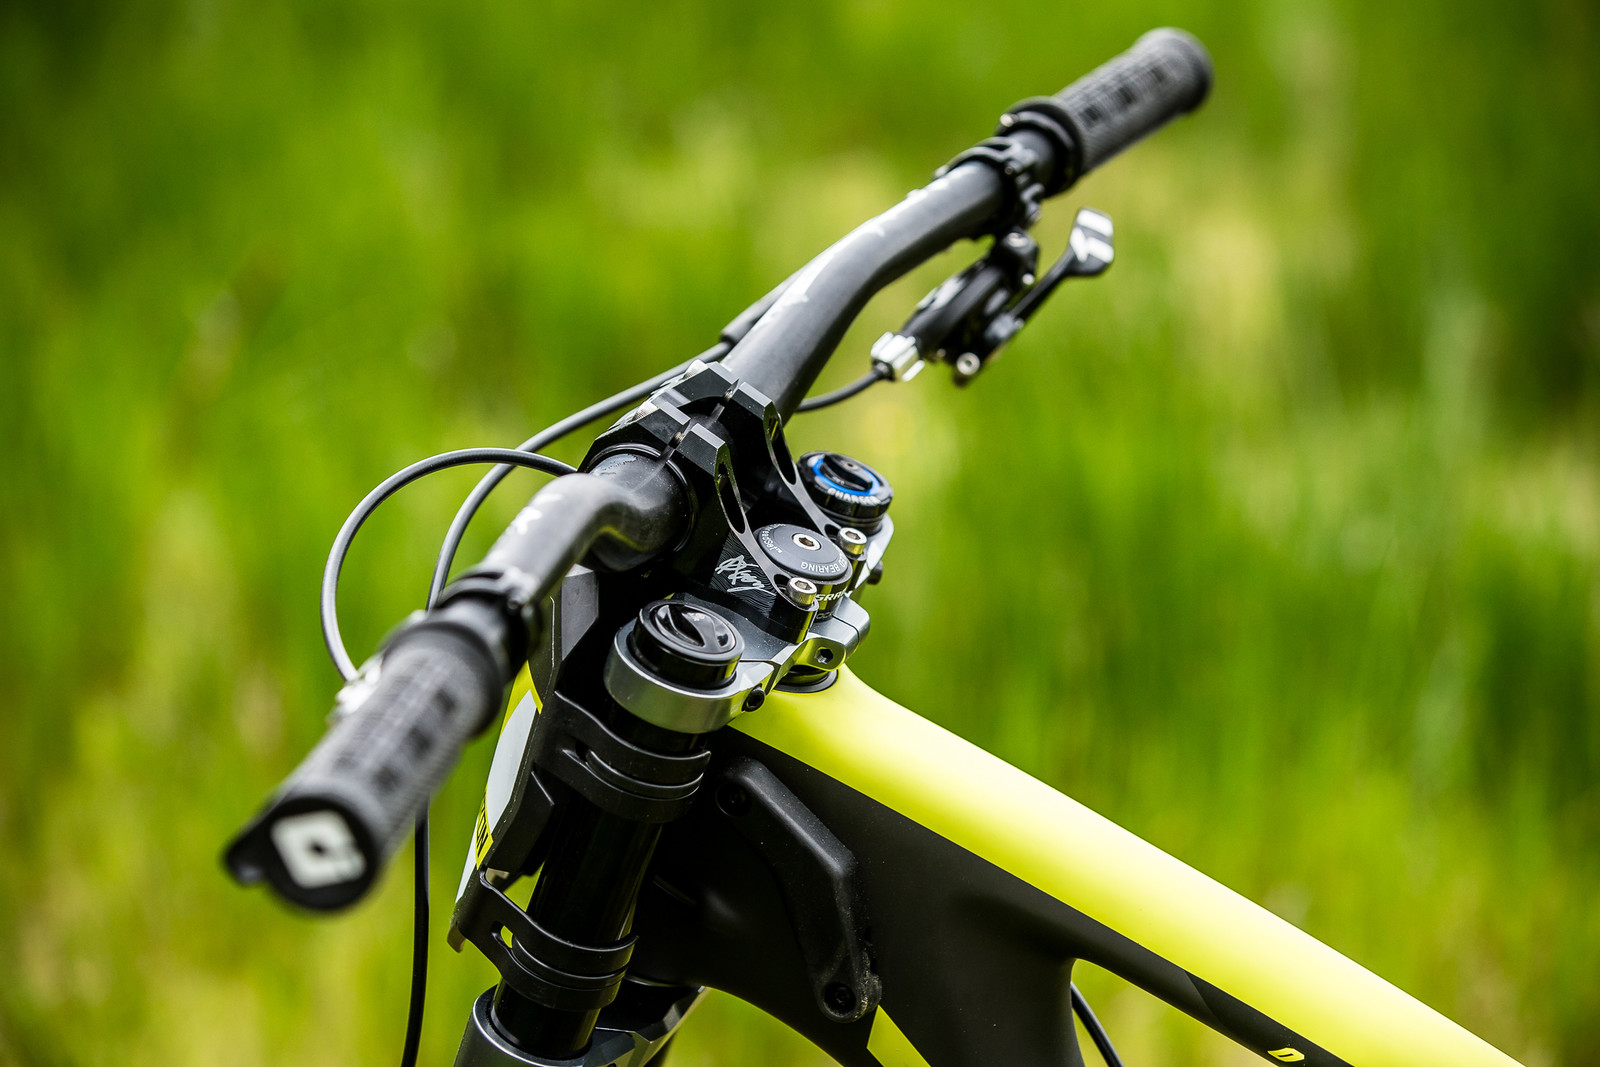 Kore Direct-Mount Stem - Connor Fearon's Kona Supreme Operator for Fort William - Mountain Biking Pictures - Vital MTB